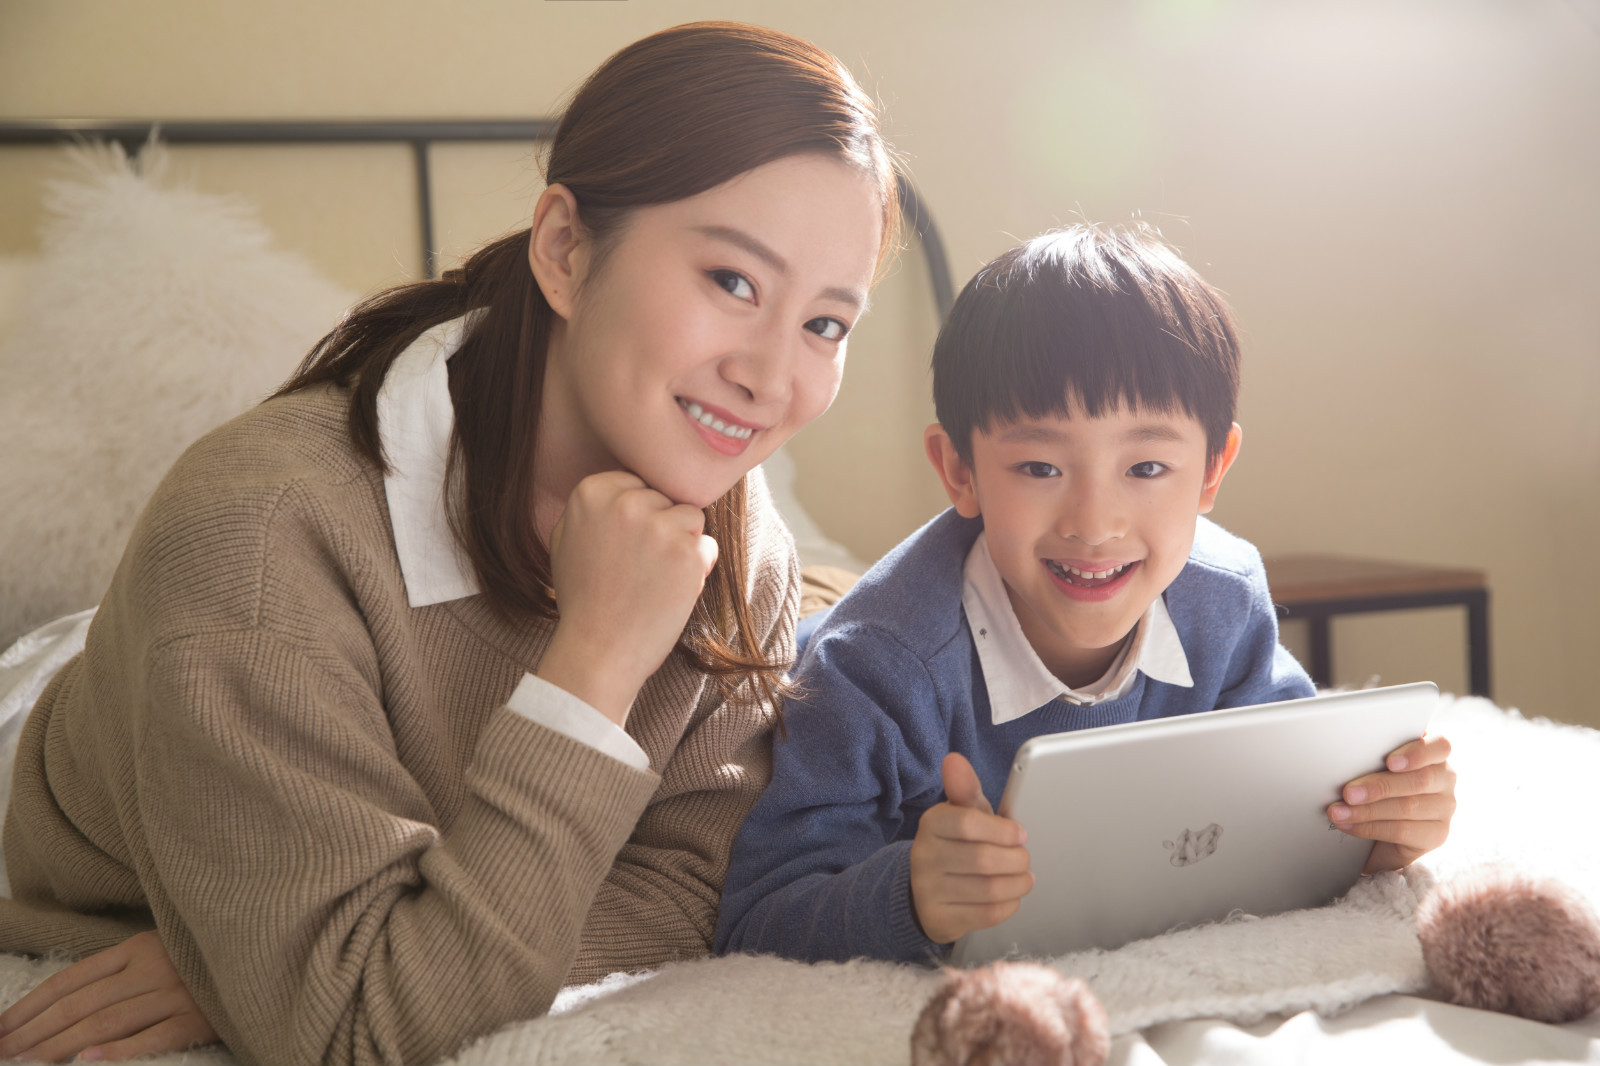 Parents can choose between our tworeputable programs. Reach by National Geographic Kids and Hello English by Cambridge University. We then coupled our materials with cutting-edge technology to help students obtain their educational goals. Our classes are engaging, productive,and, above all else, fun!